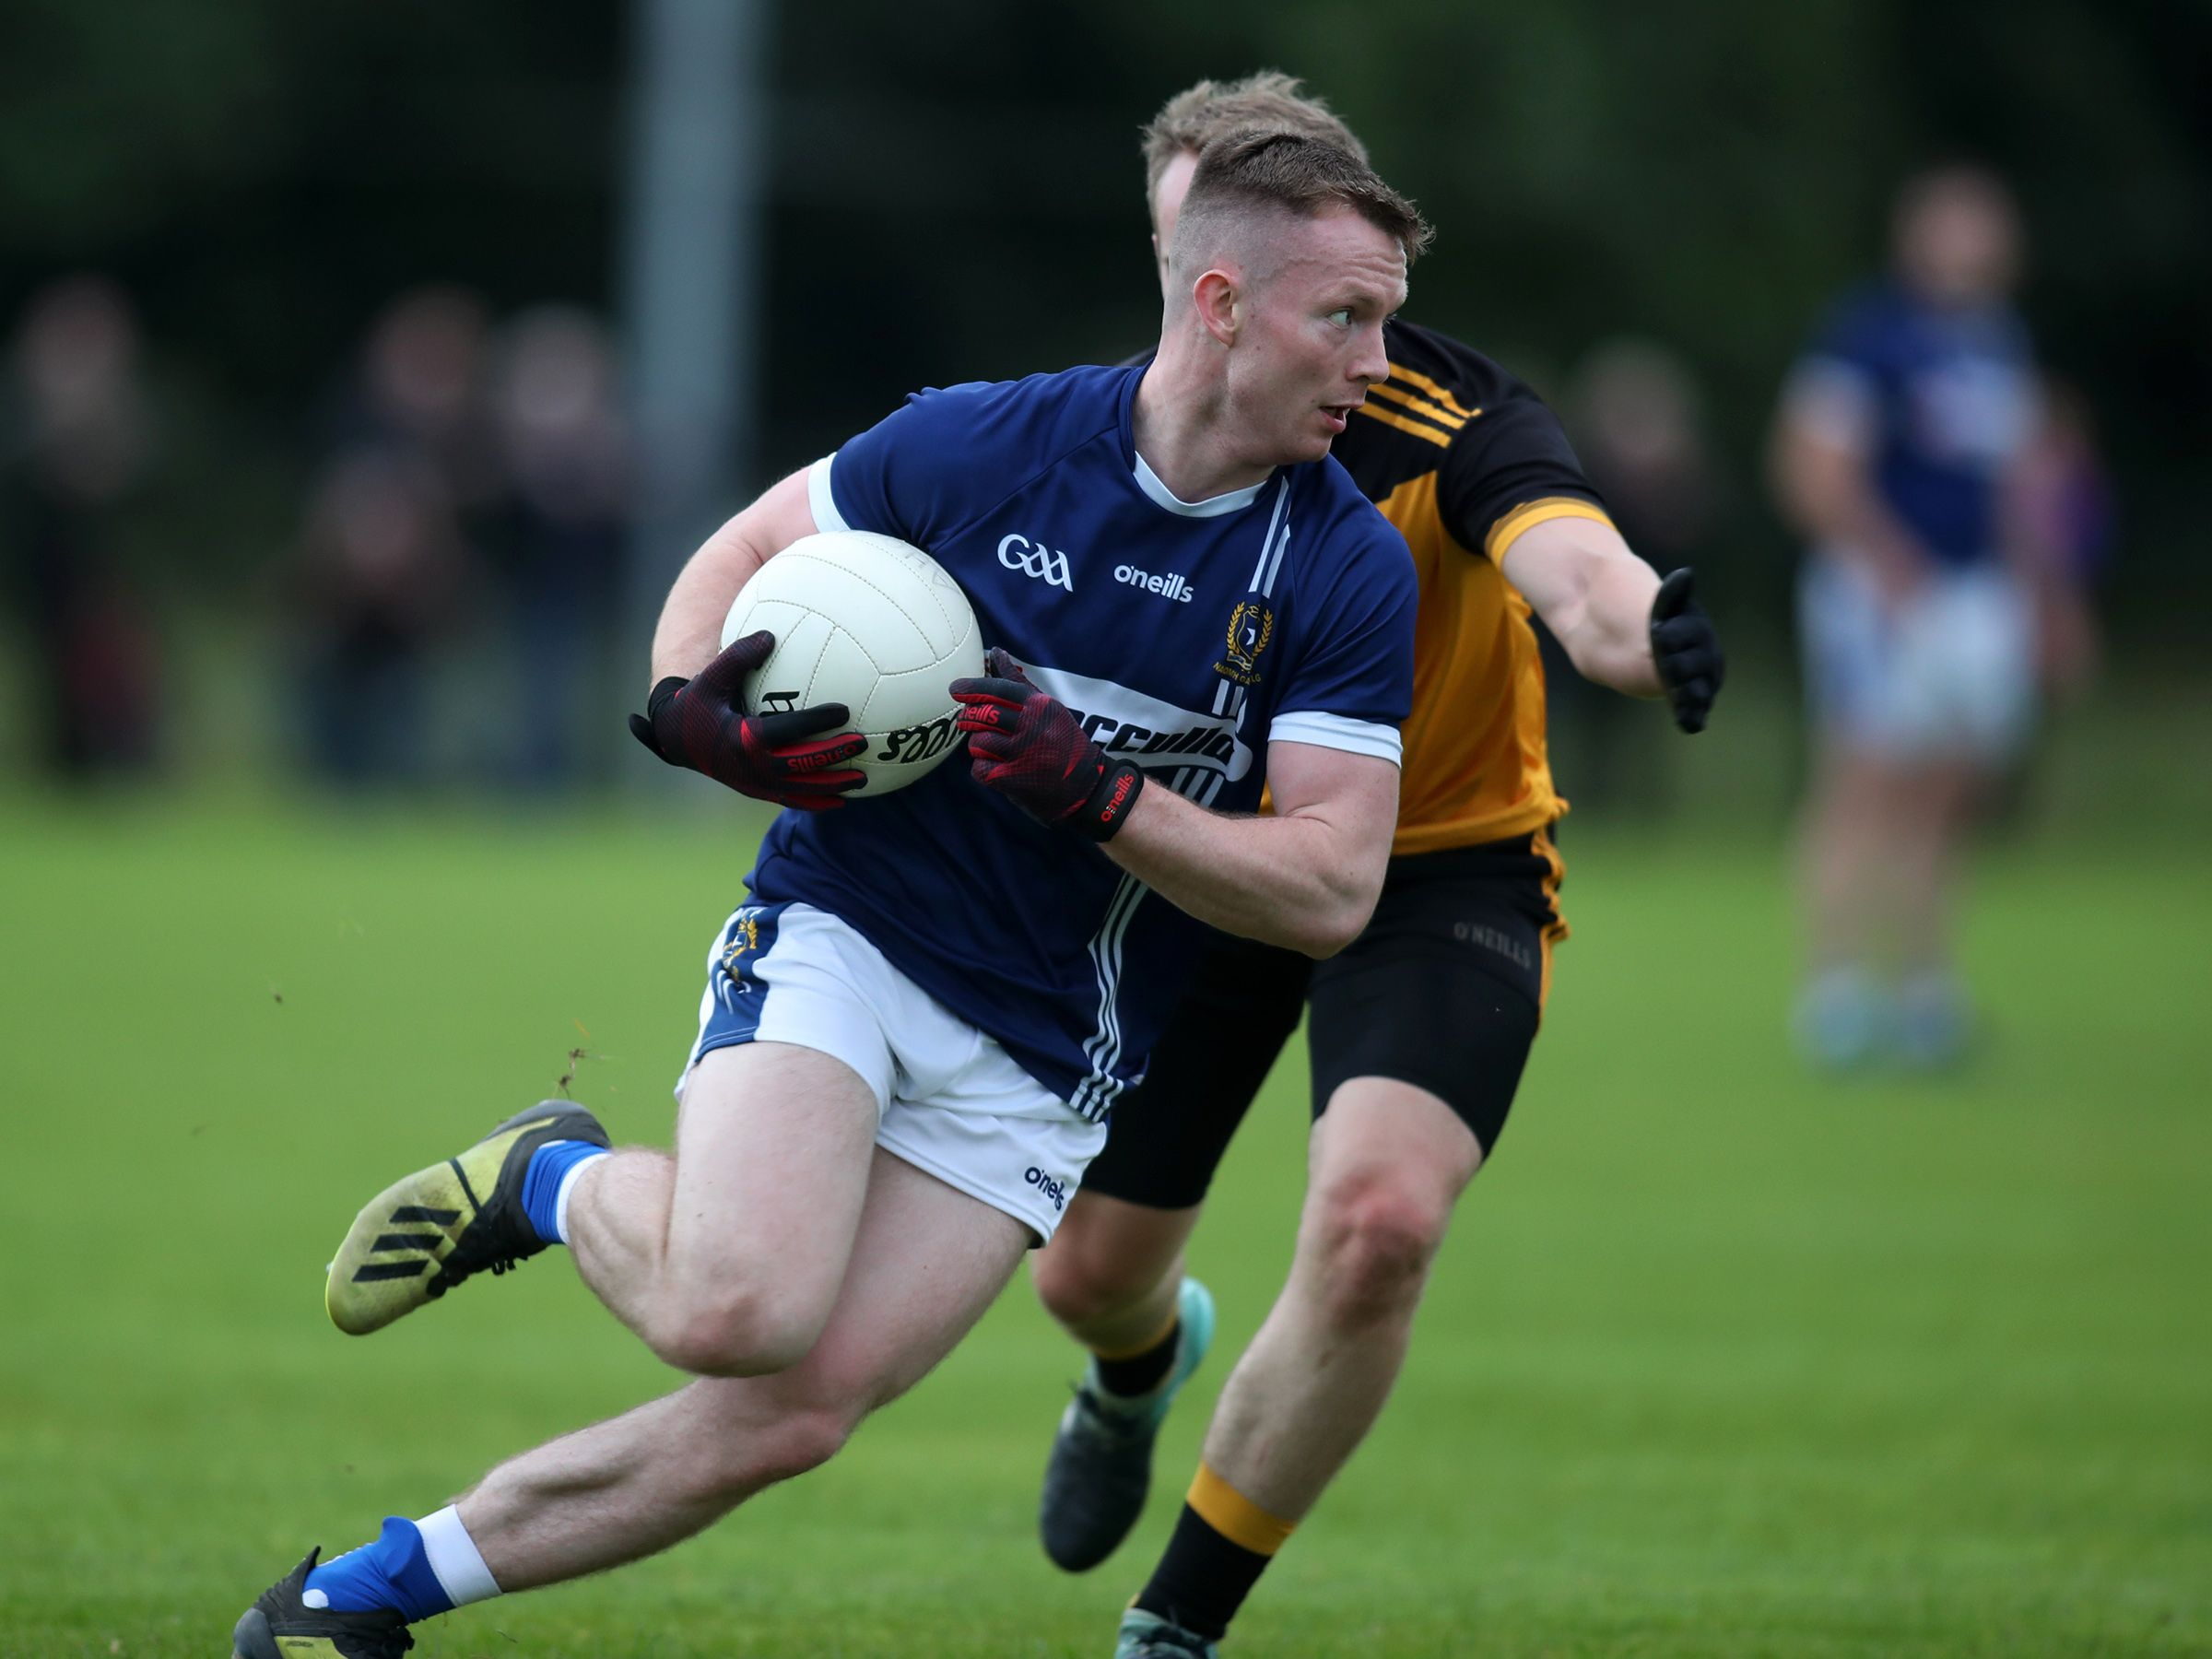 St Gall's defender John McCaffrey in action